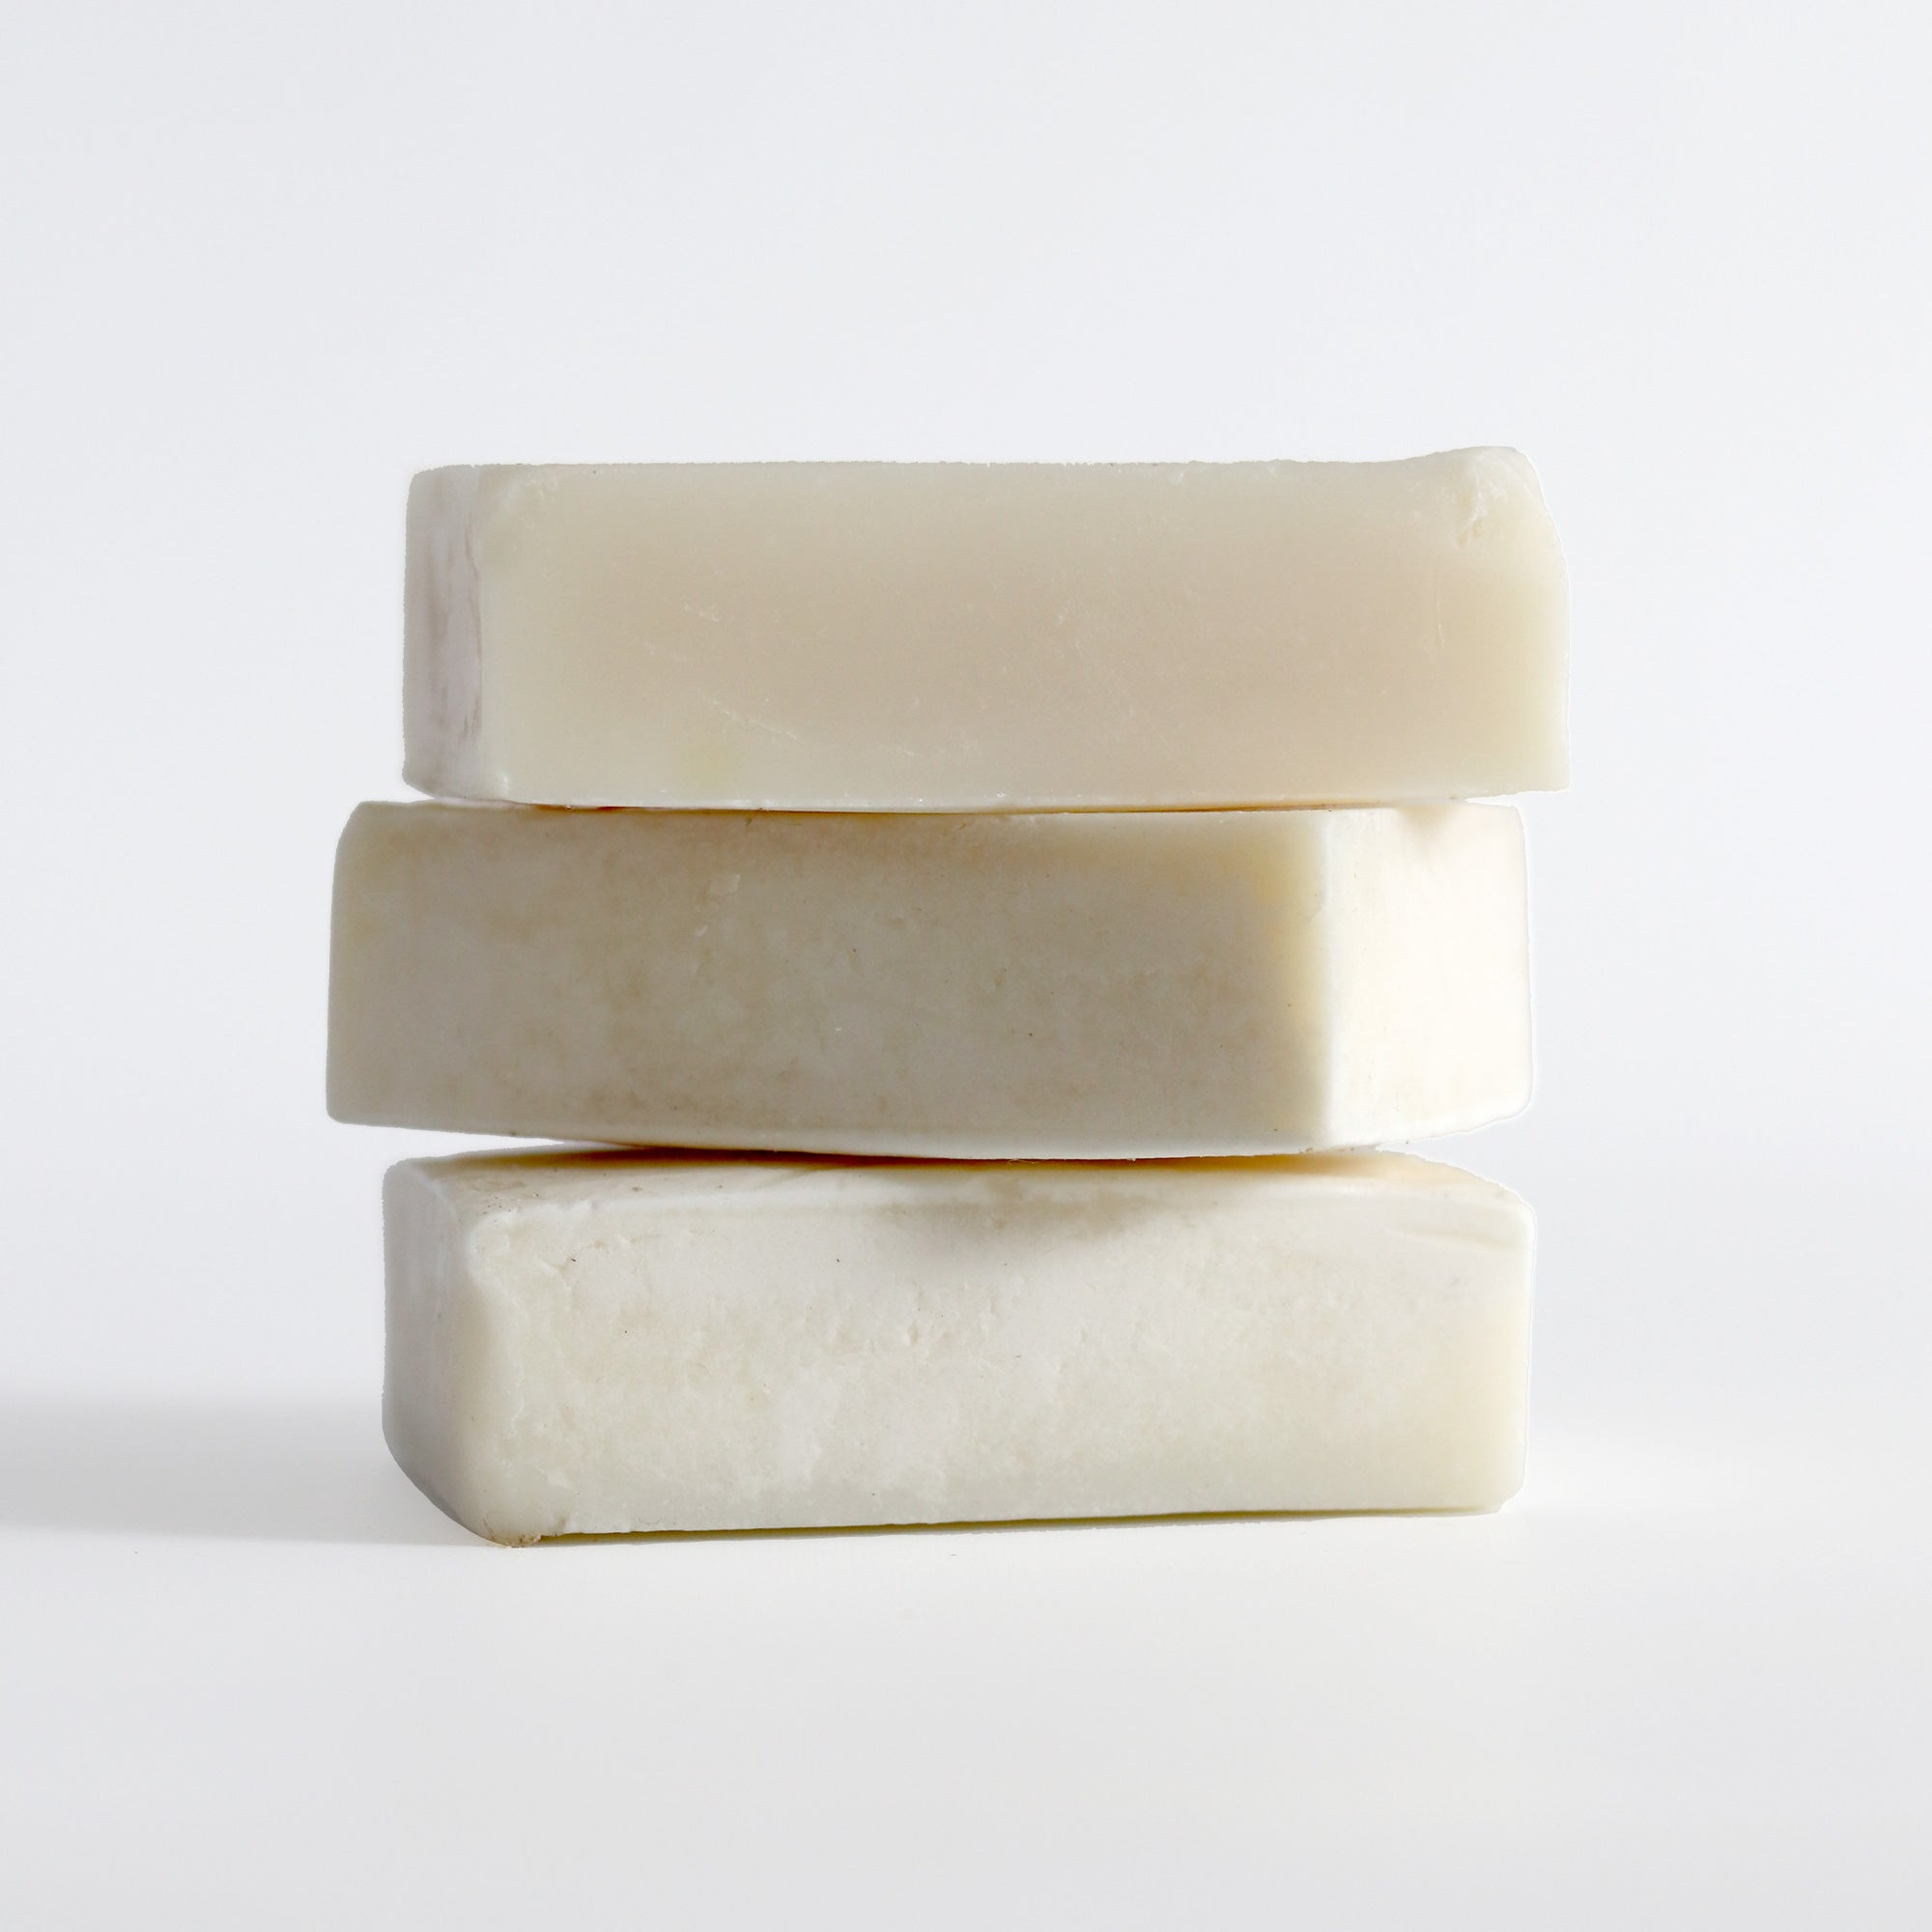 S.W. Basics x Naked Bar Soap Co. Cream Soap.